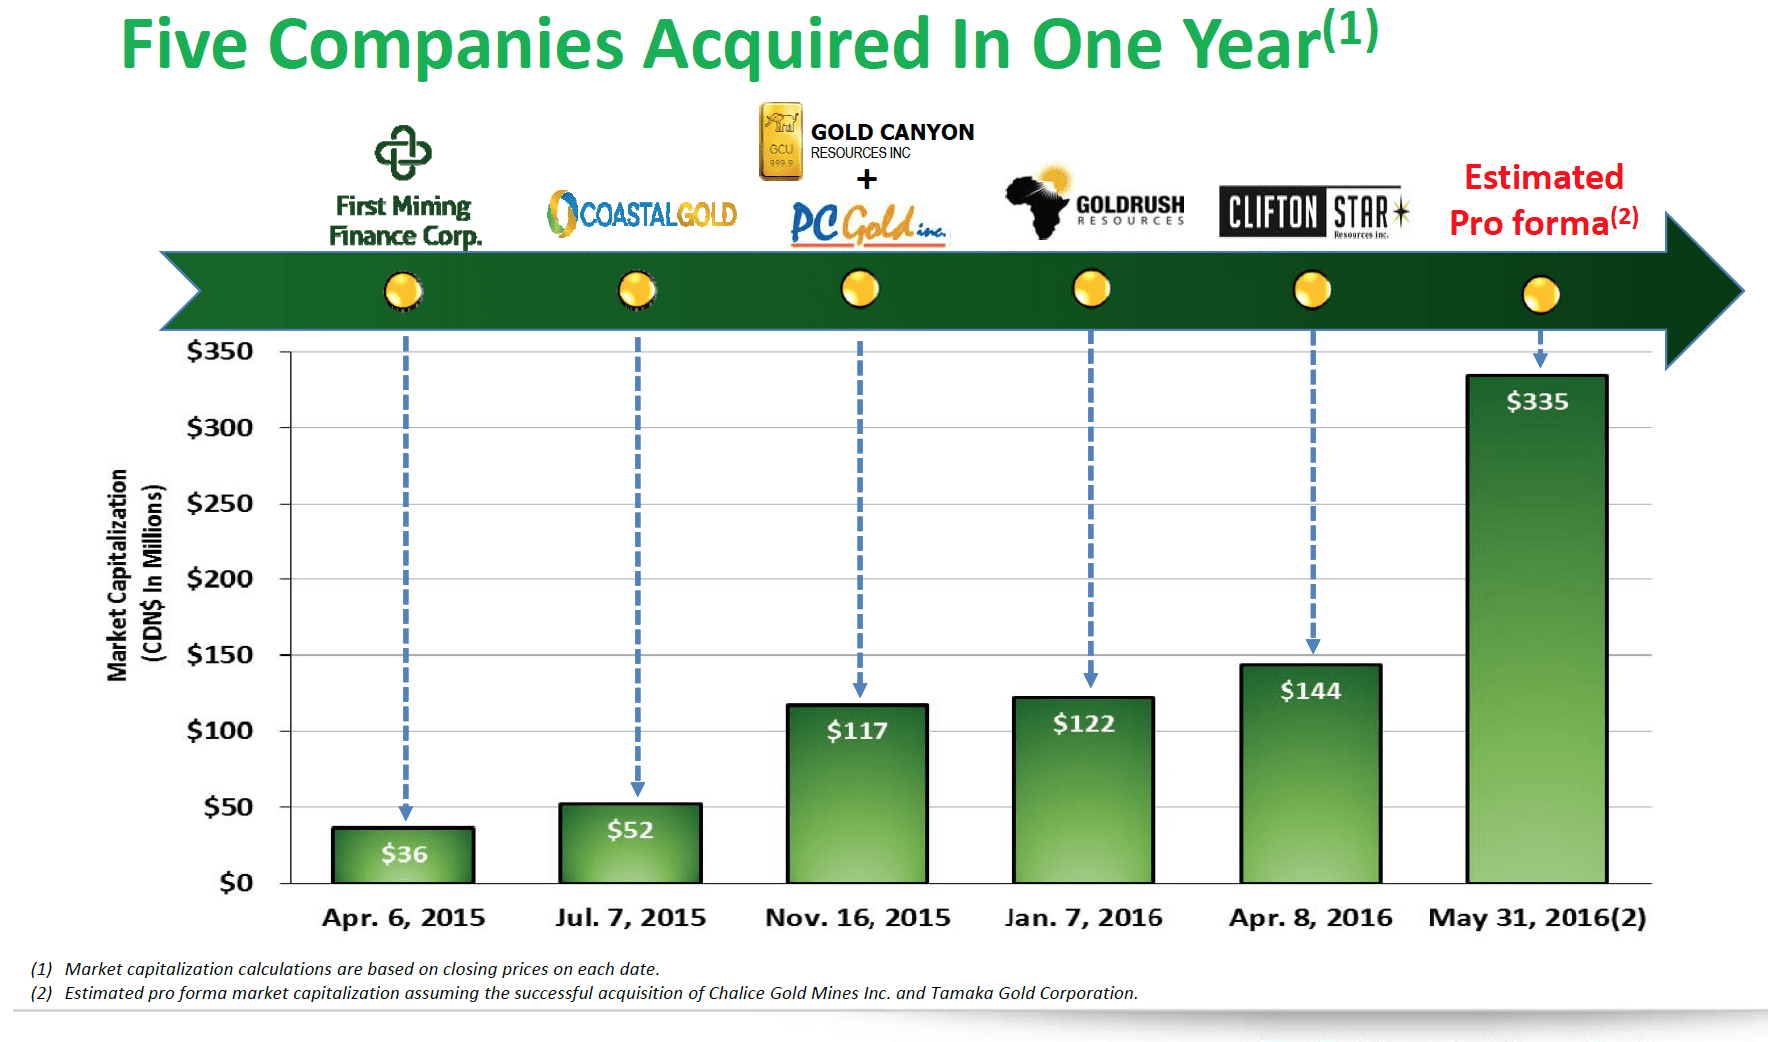 Five Companies in One Year